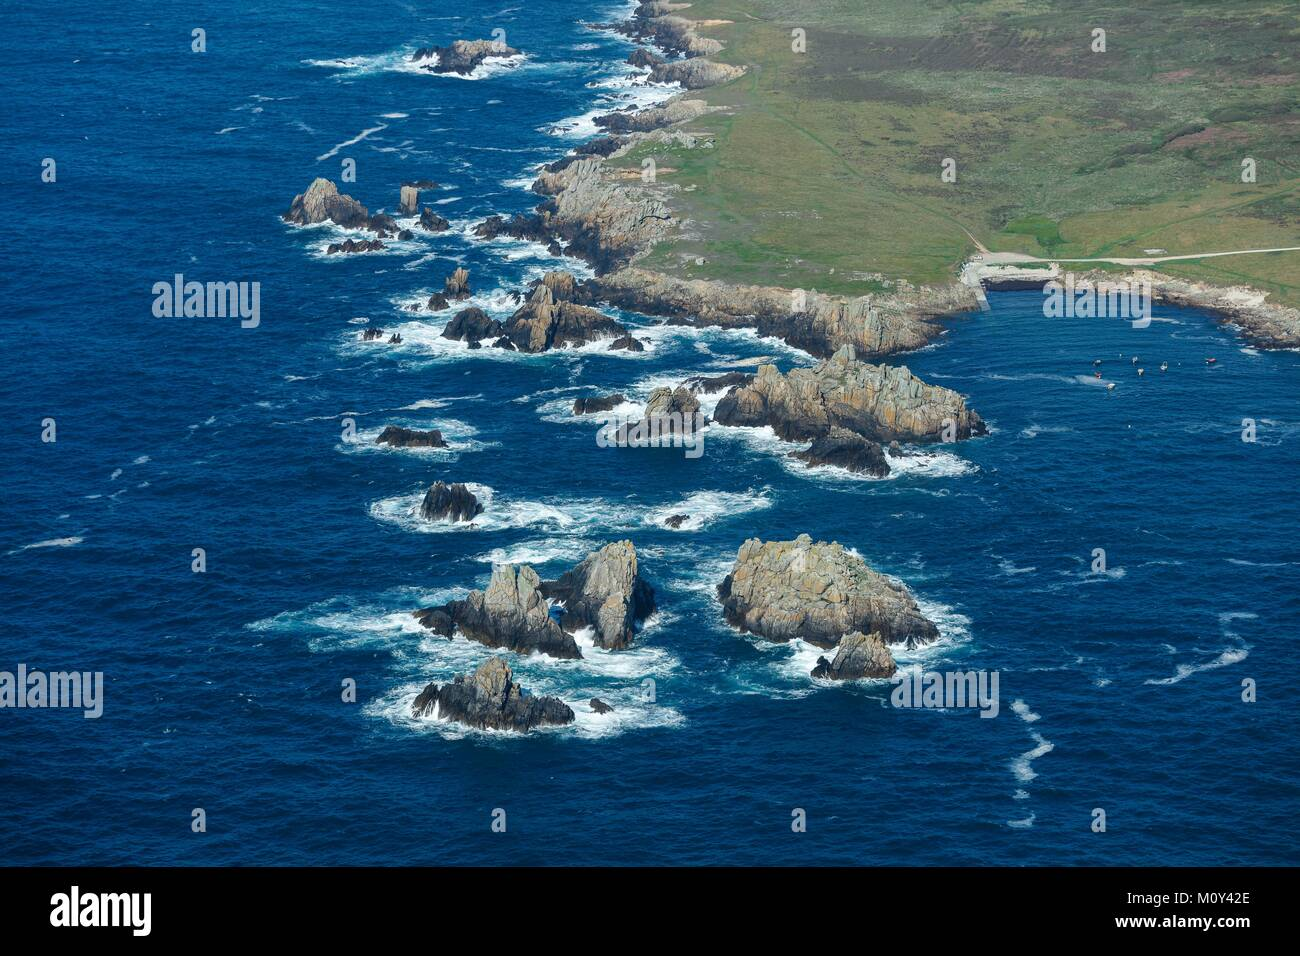 France,Finistere,Ouessant island,Yuzin beach and rocky coast (aerial view) - Stock Image